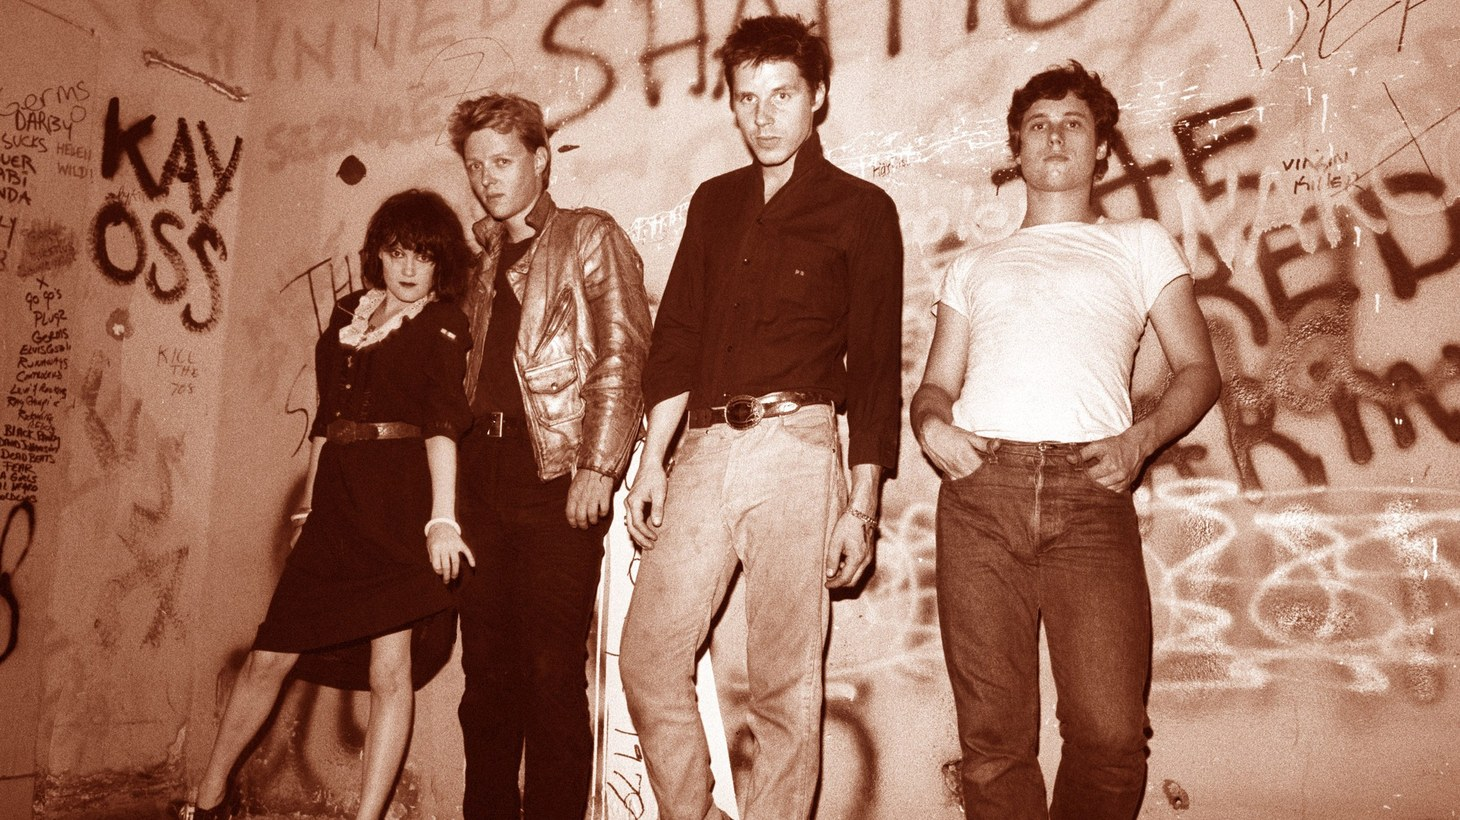 When it comes to Punk bands, X, lead the pack as one of the best bands to come out of the burgeoning LA scene in the late 70's. Lead by poets Exene Cervenka and John Doe, X released their debut album in 1980.